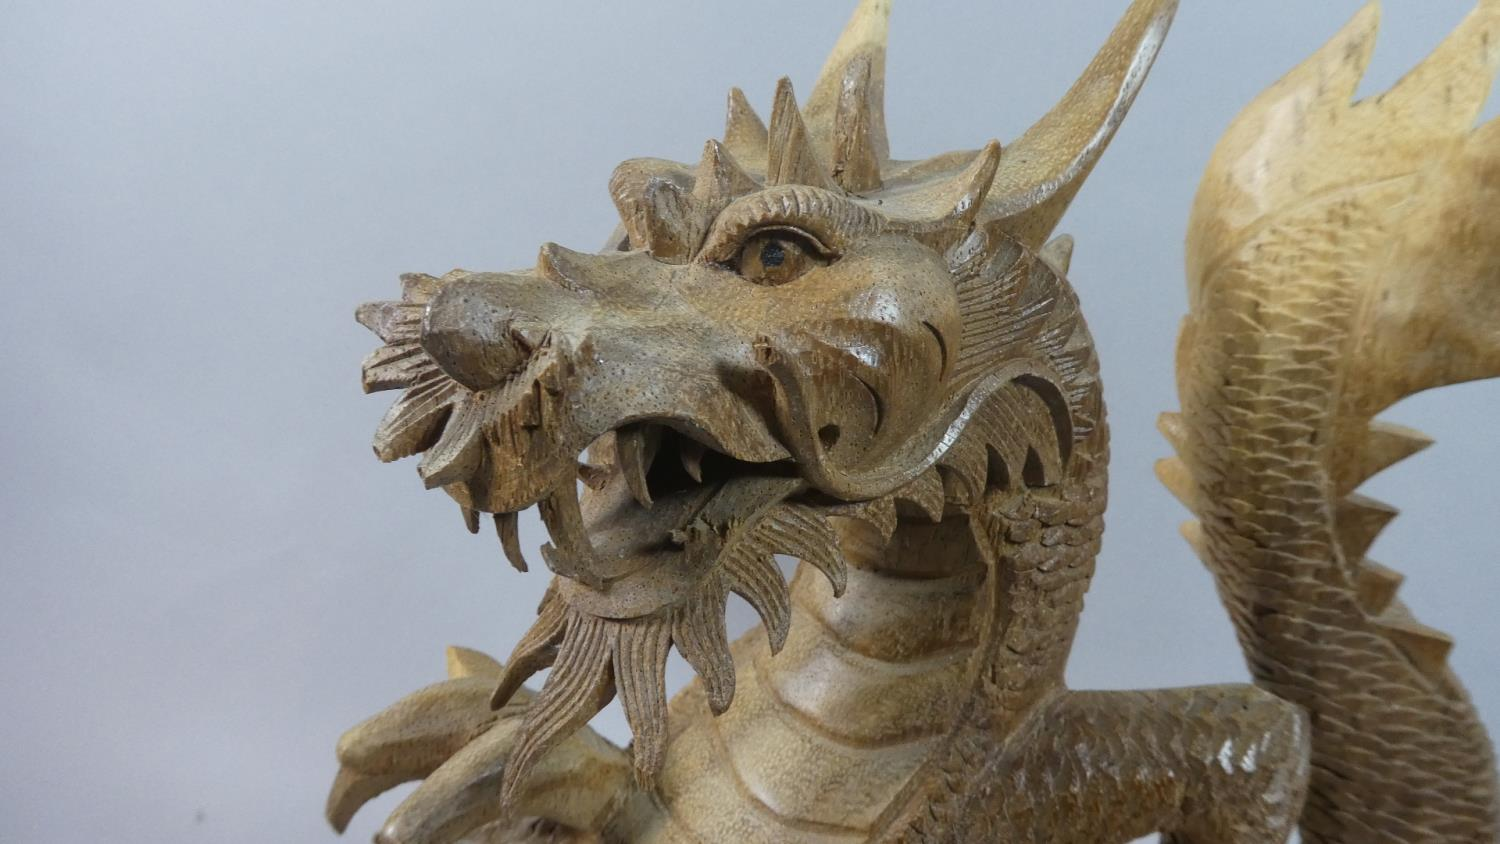 Lot 104 - A Large Modern Carved Wooden Study of a Dragon, 41.5cm High